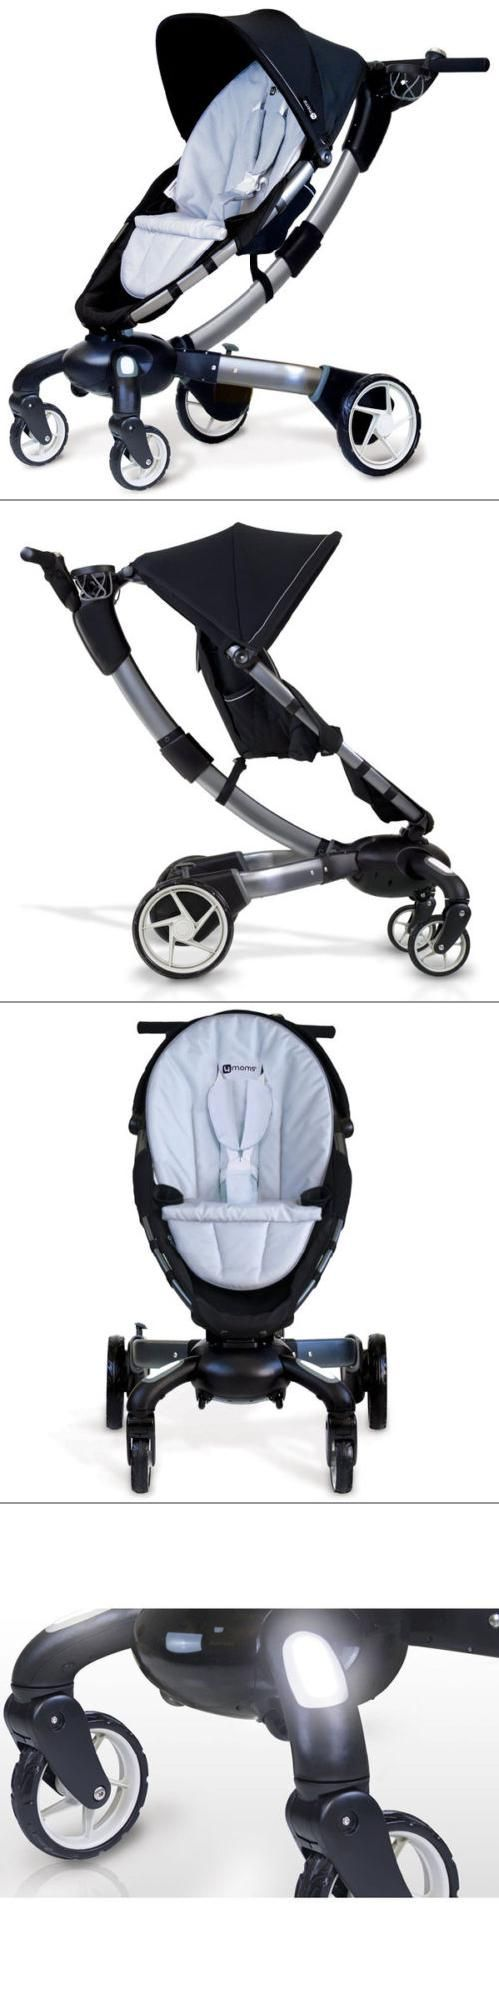 4moms Origami Stroller Review | 2003x499